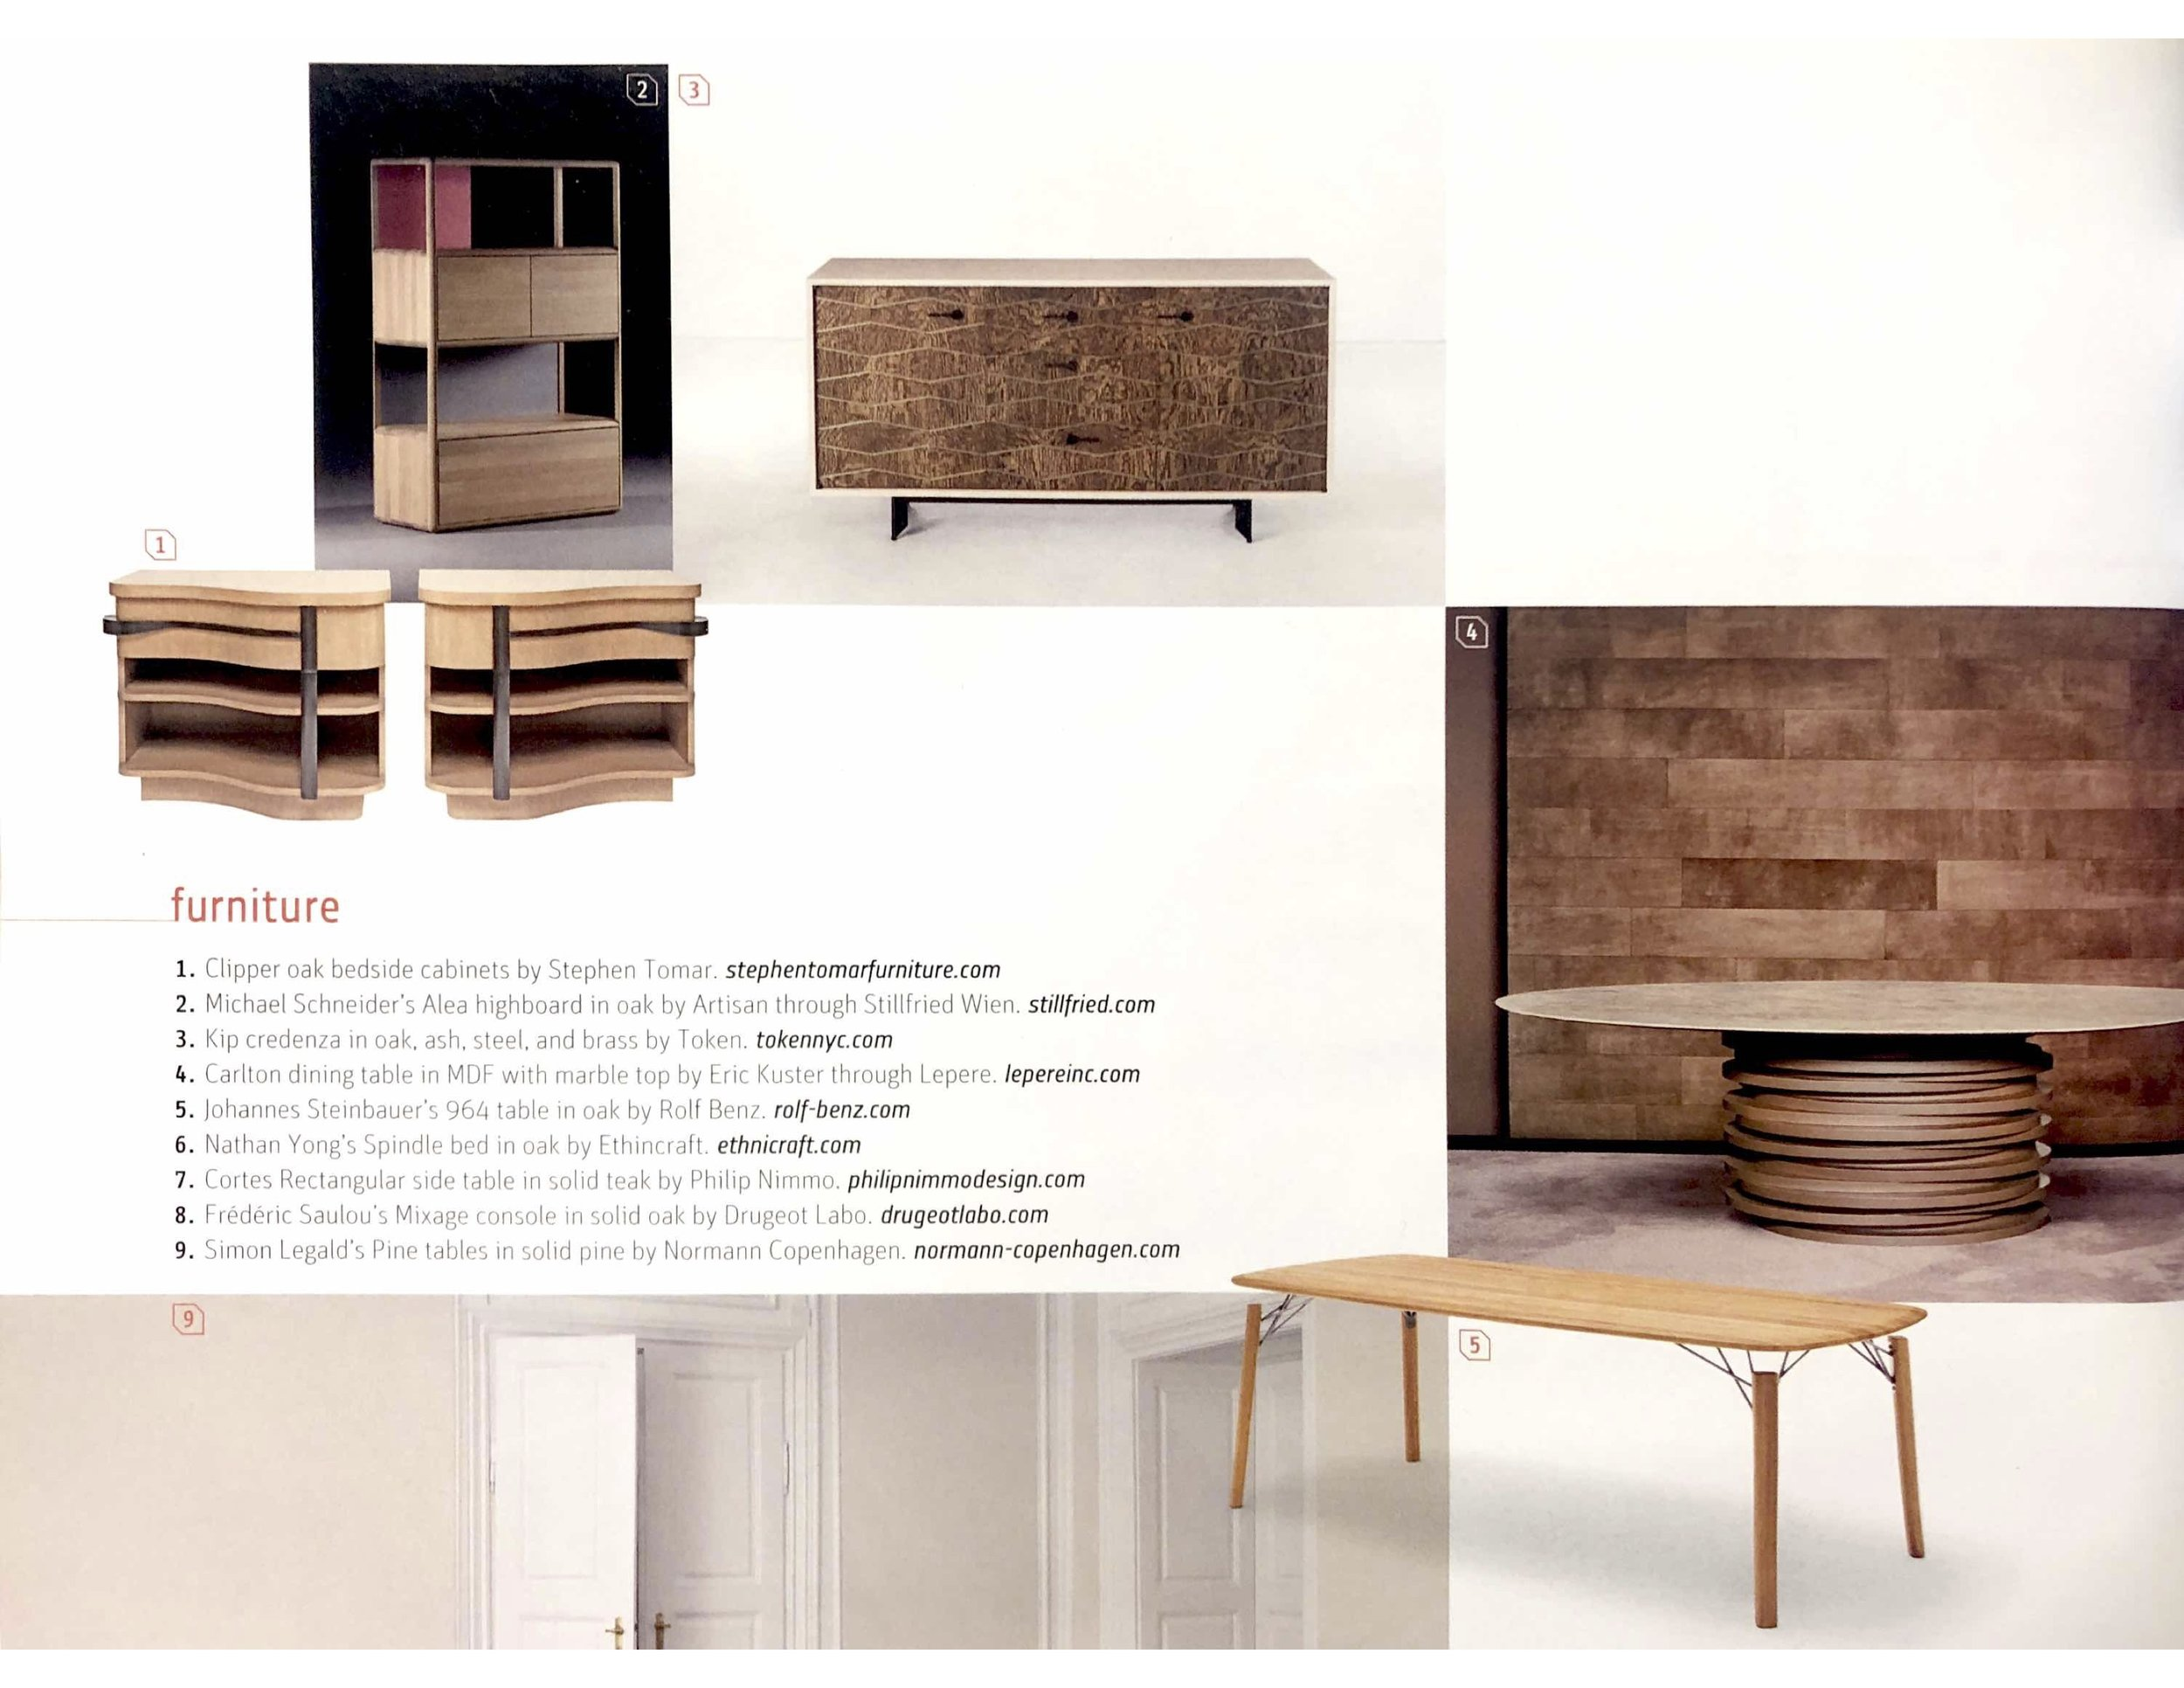 Interior_Design_Magazine_2.jpg